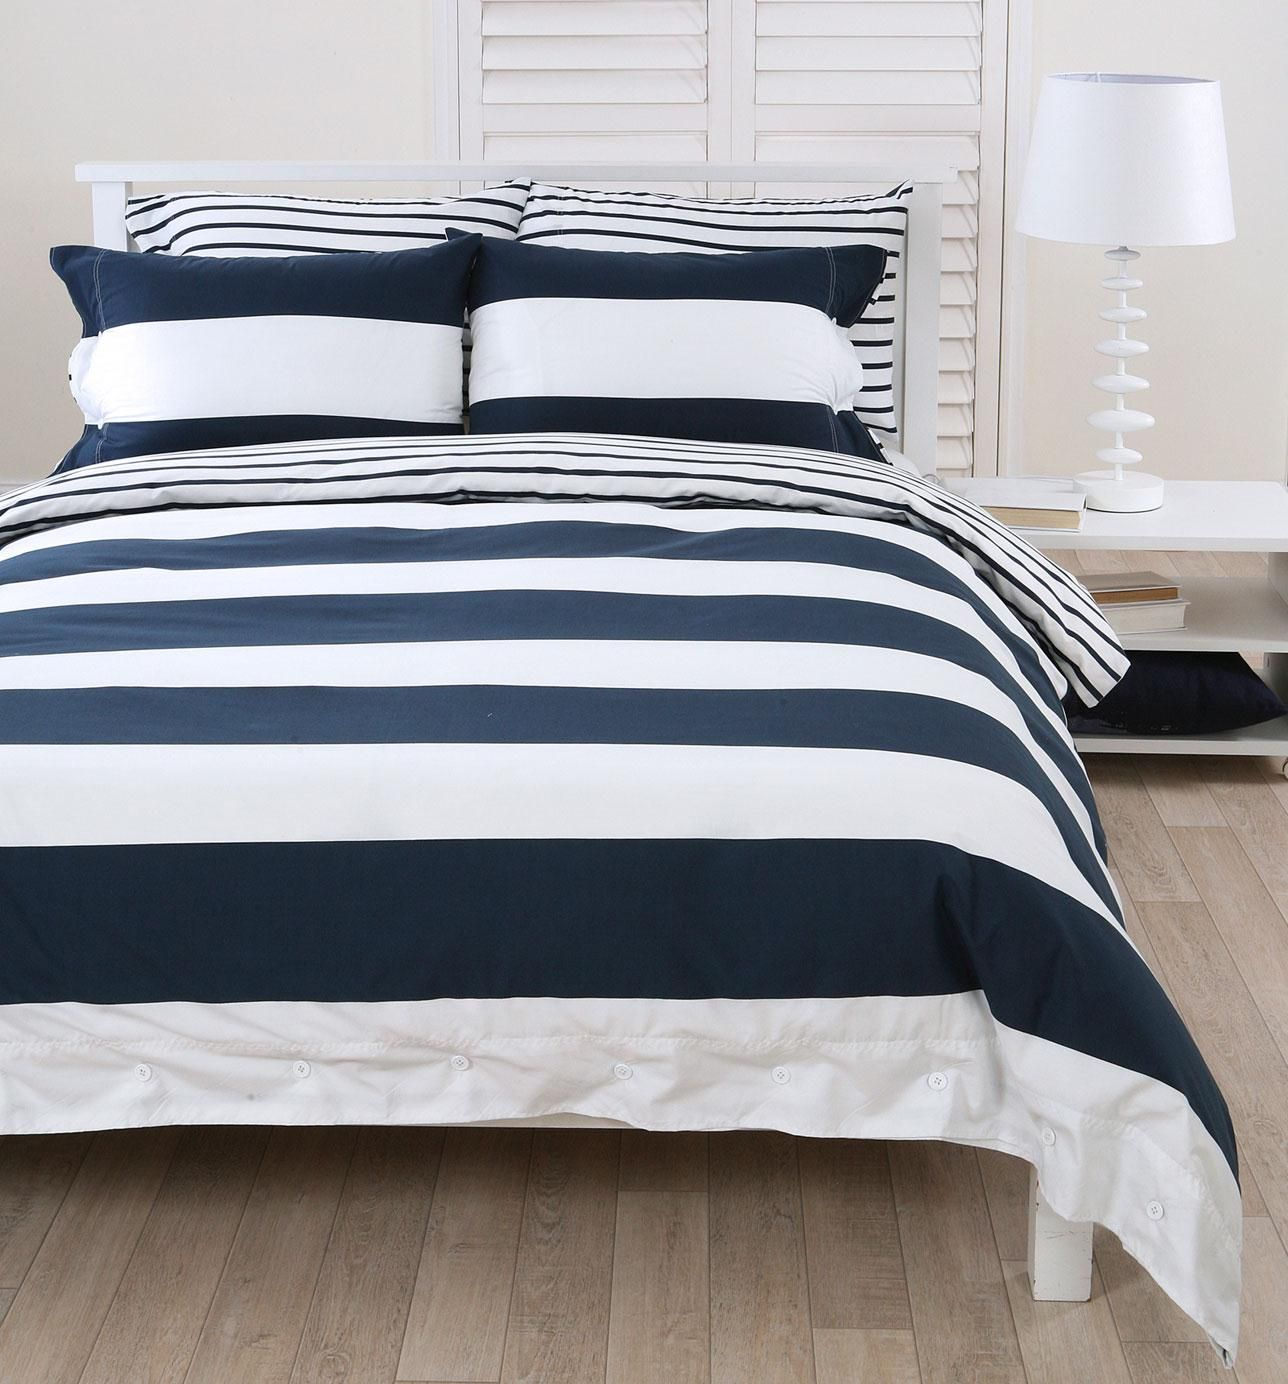 Navy White Striped Duvet Cover In Love With Our New Bedroom